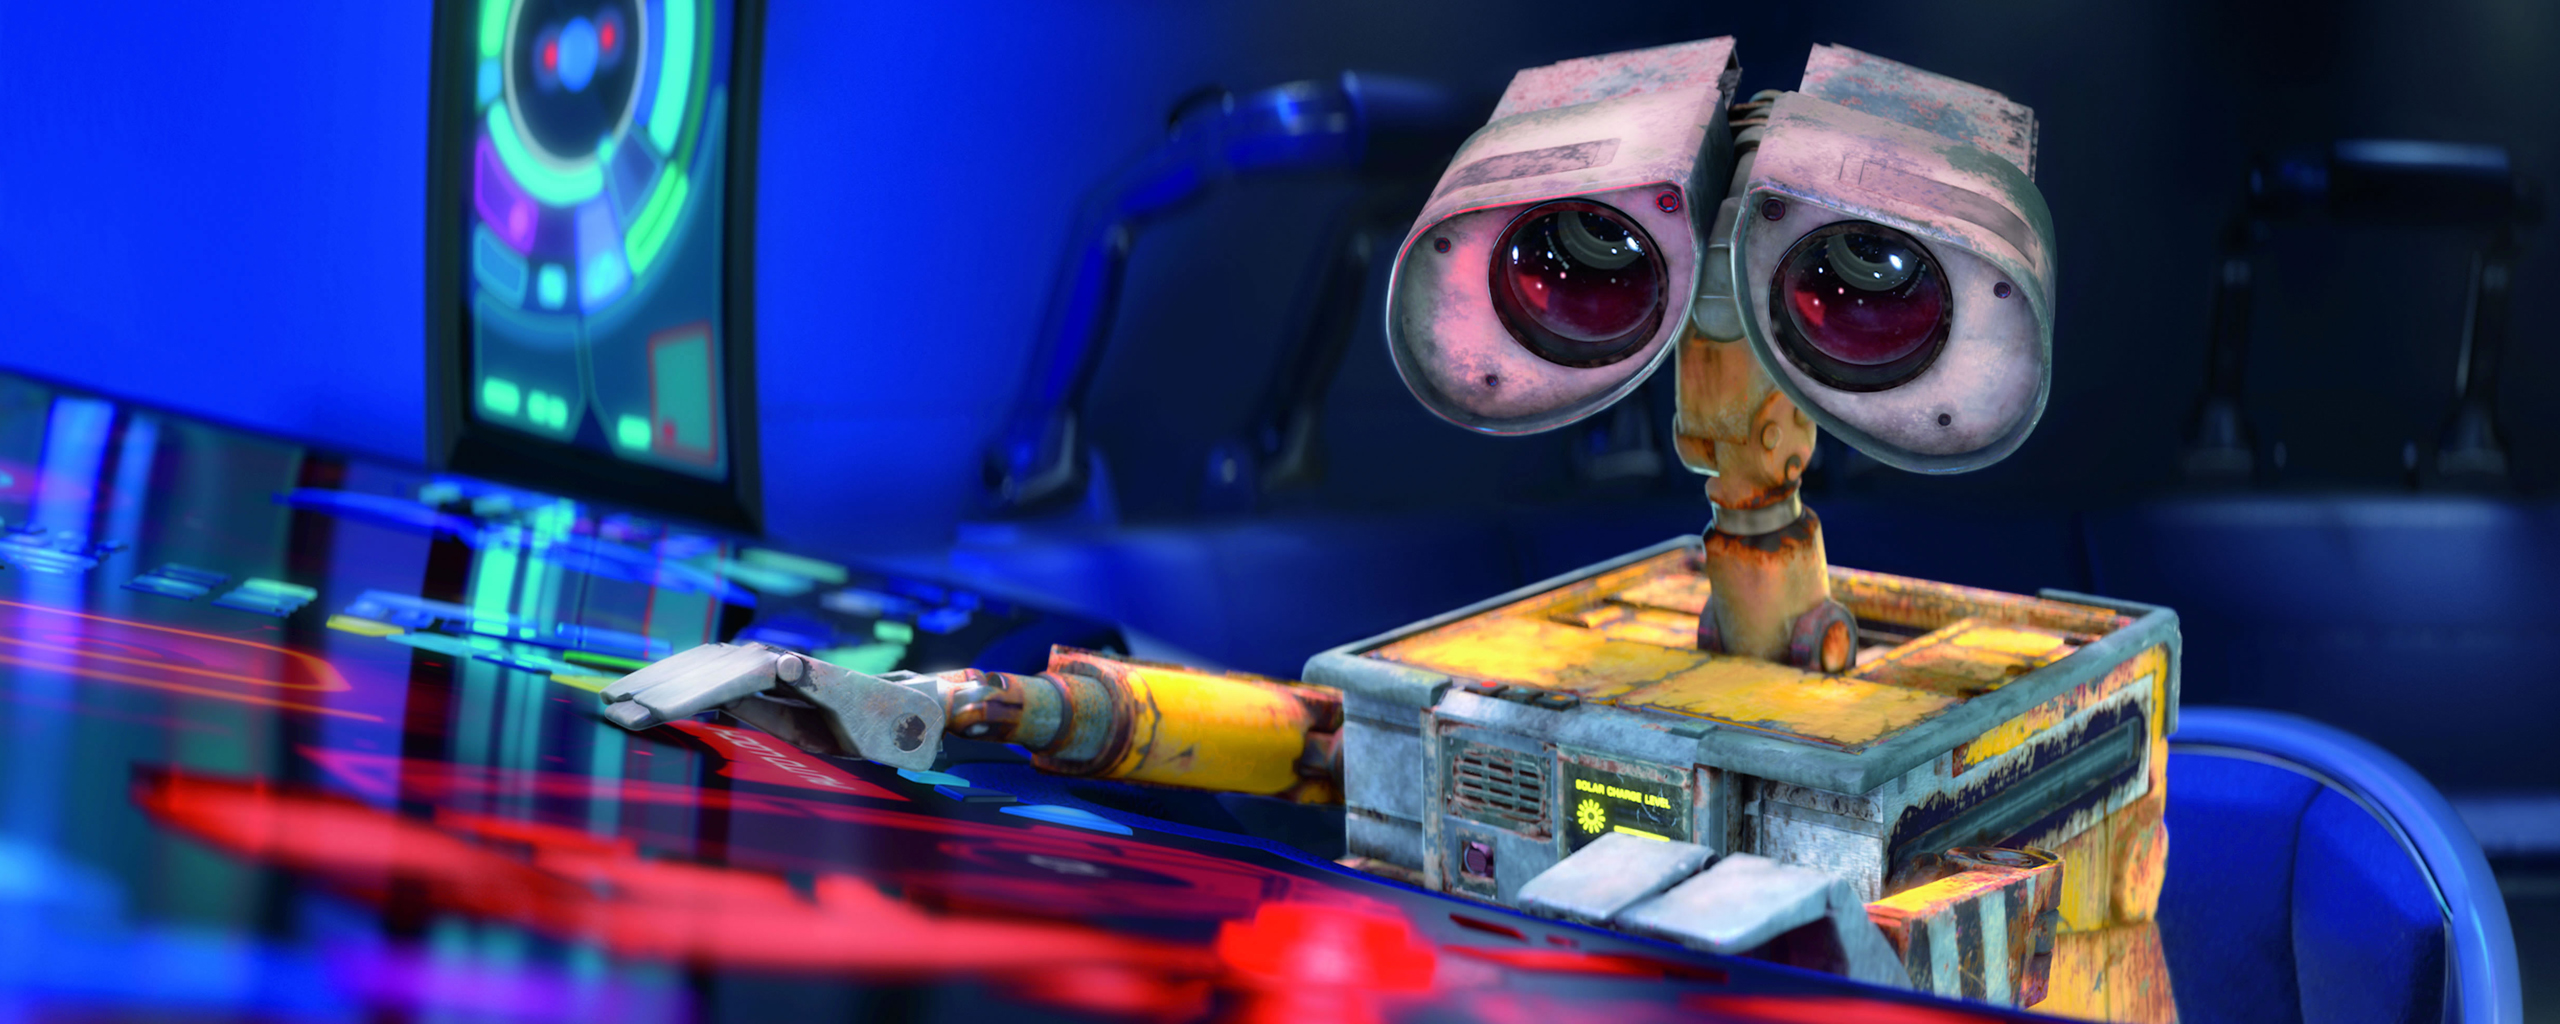 Wall-e Desktop by Starkadder